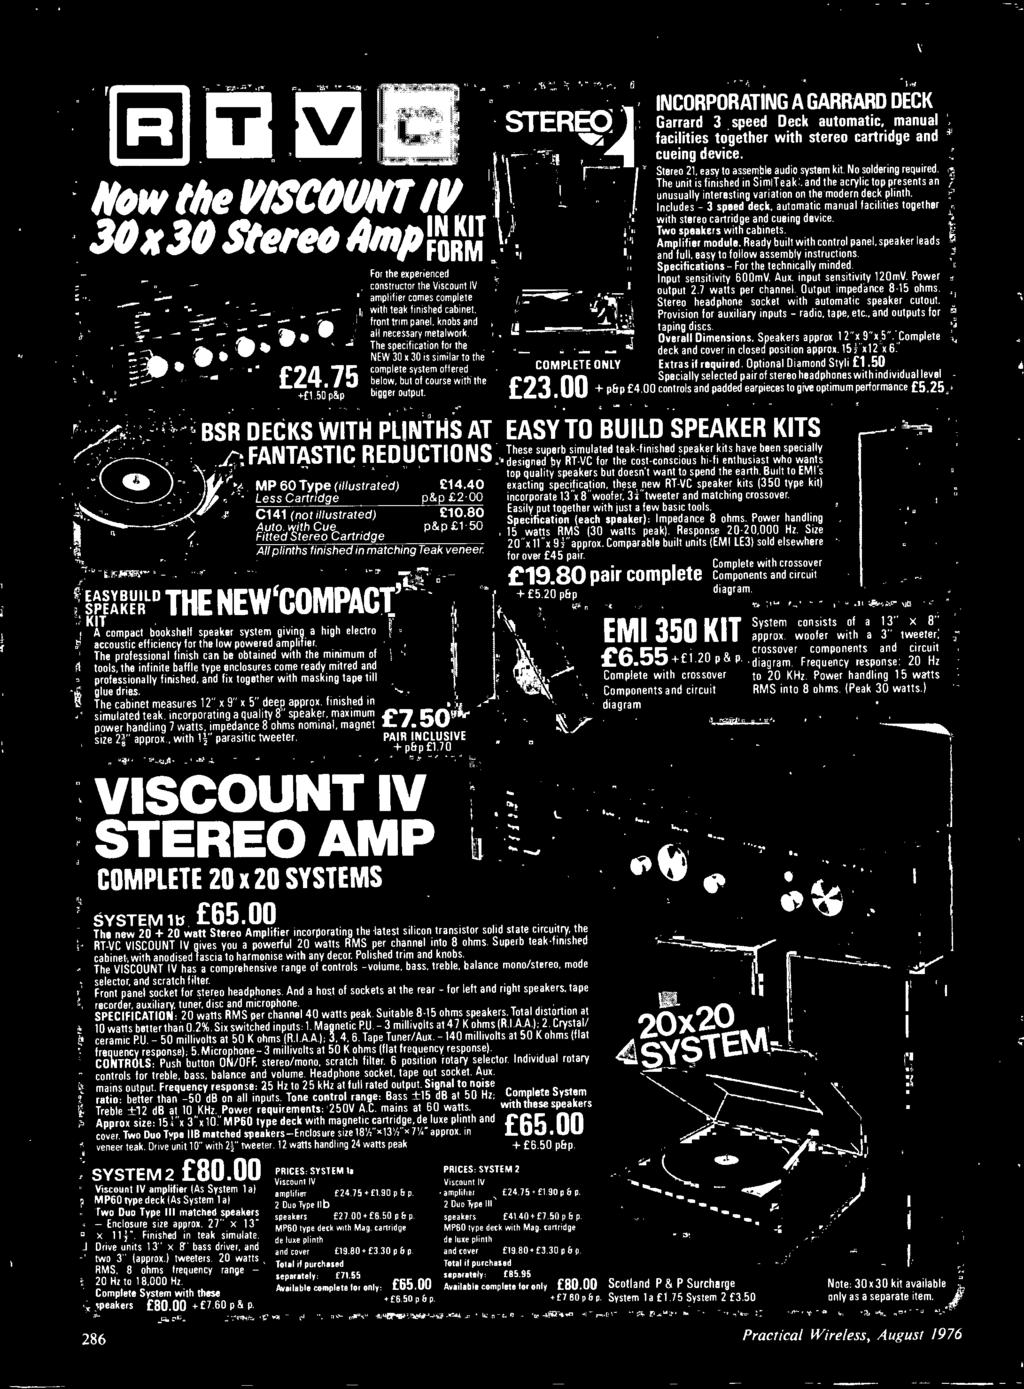 August Also Audio De Cassette Po Er Supply For Ca Pdf 7w Amplifier Based Tba810 Circuit Diagram Ild Speaker The Newcompac Kit A Compact Bookshelf System Giving High Electro